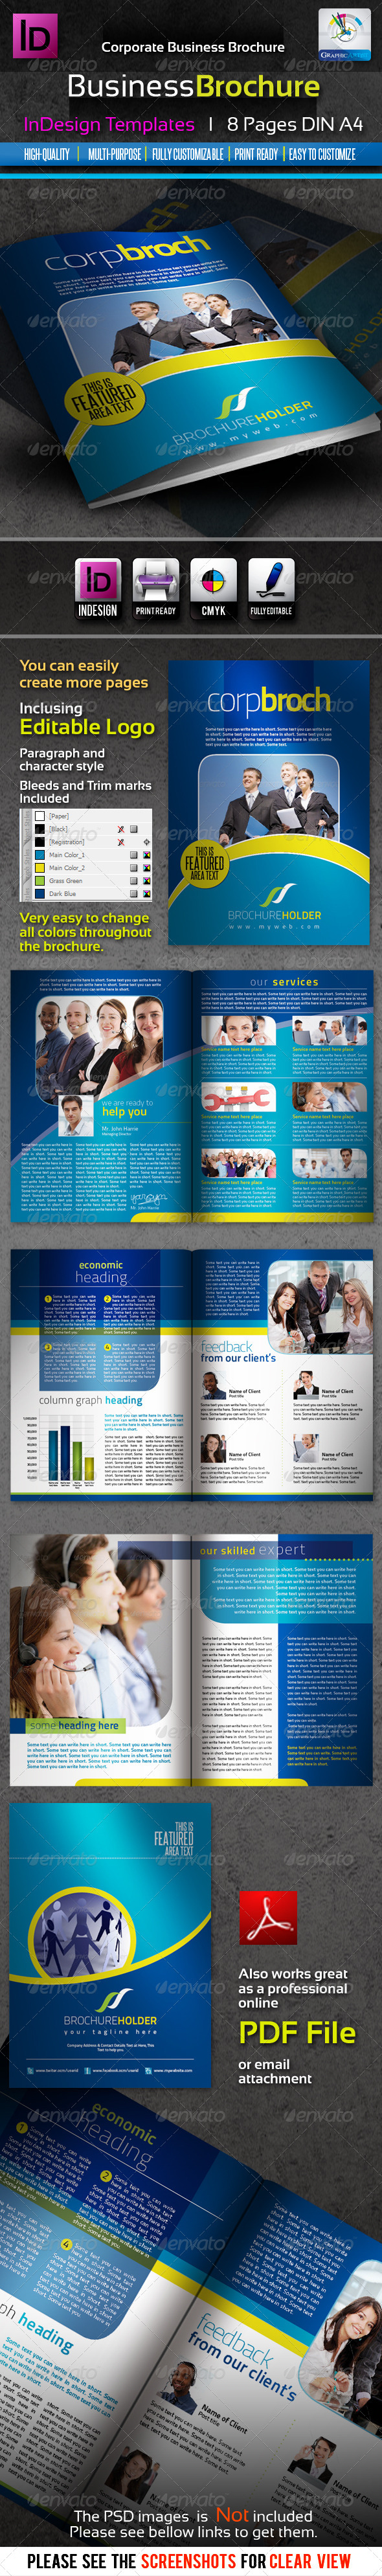 Corporate Business InDesign Brochure 8pages - Corporate Brochures